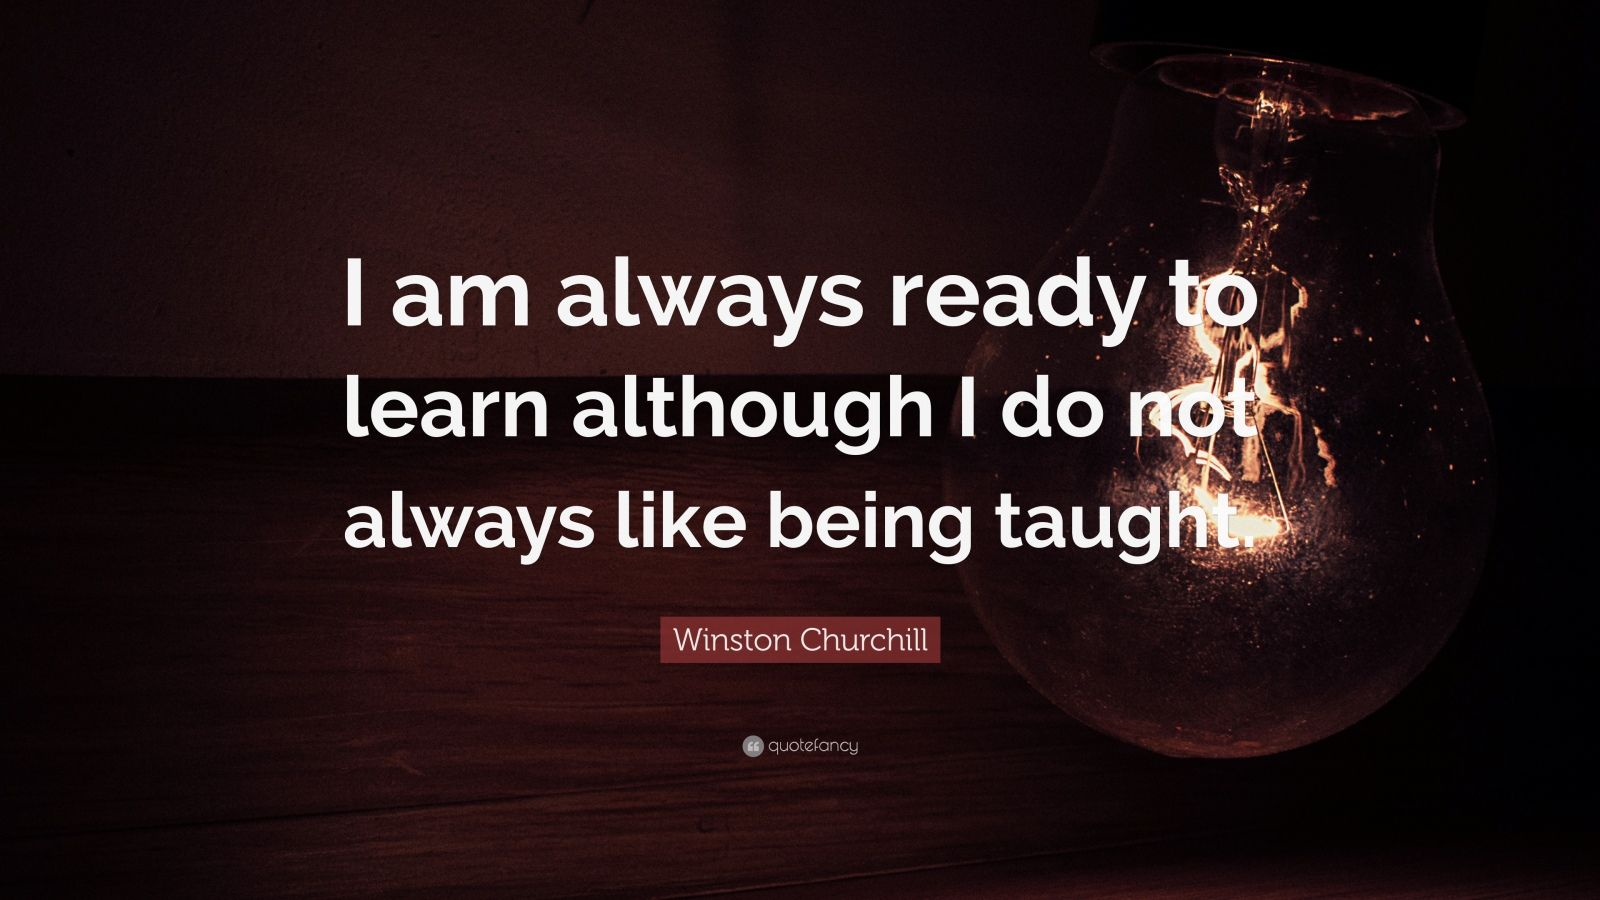 'I AM always ready to learn......although I do not always ...